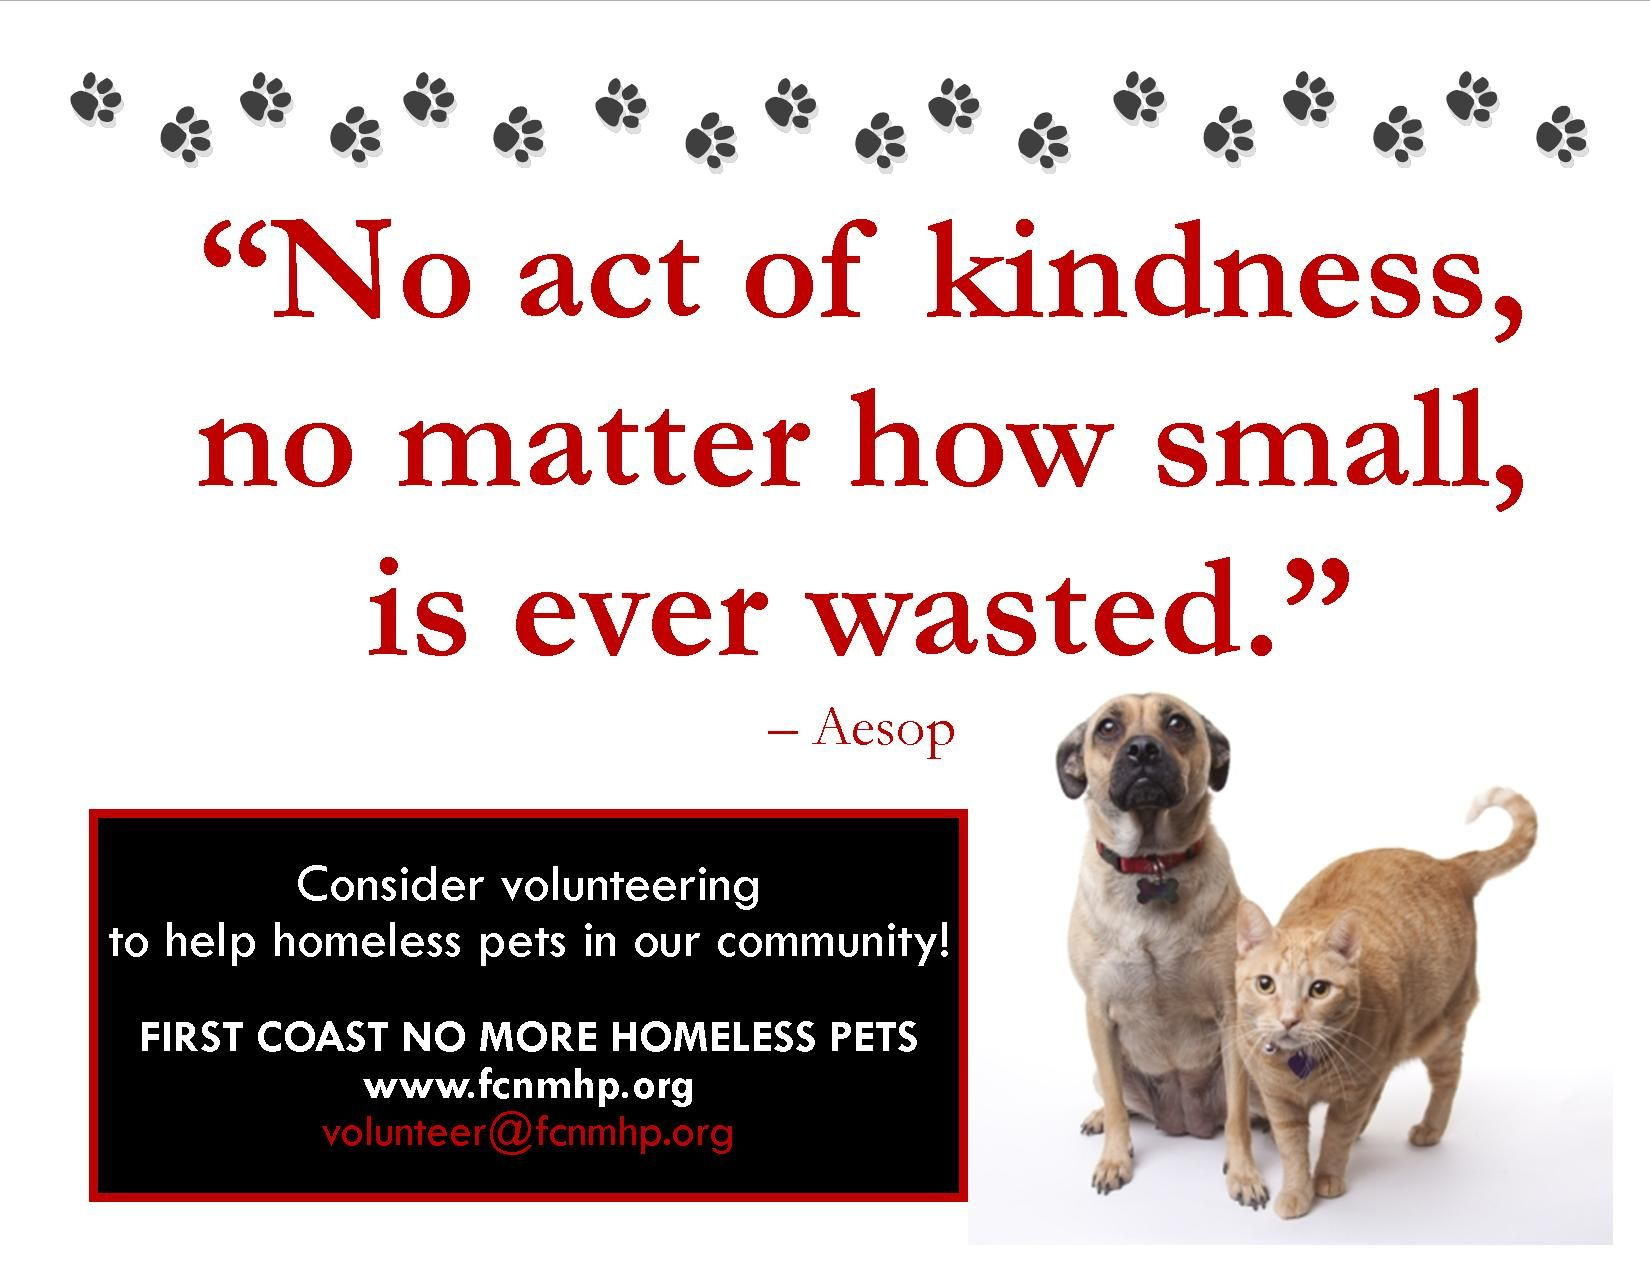 First Coast No More Homeless Pets Homeless Pets Help Homeless